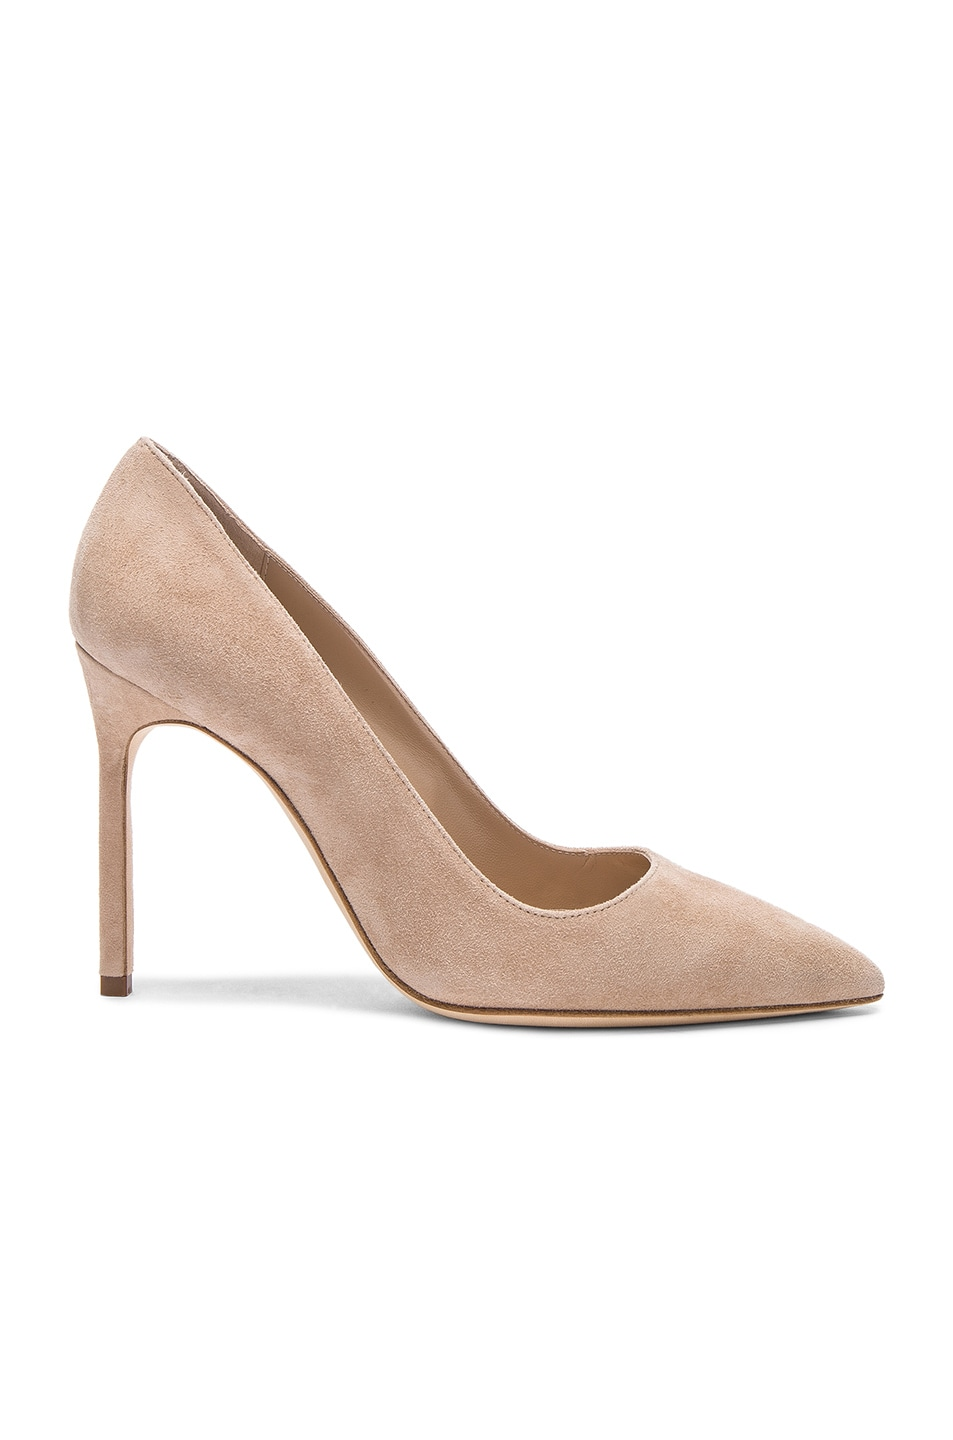 0afac7815a83 Image 1 of Manolo Blahnik BB 105 Suede Pumps in Nude Suede